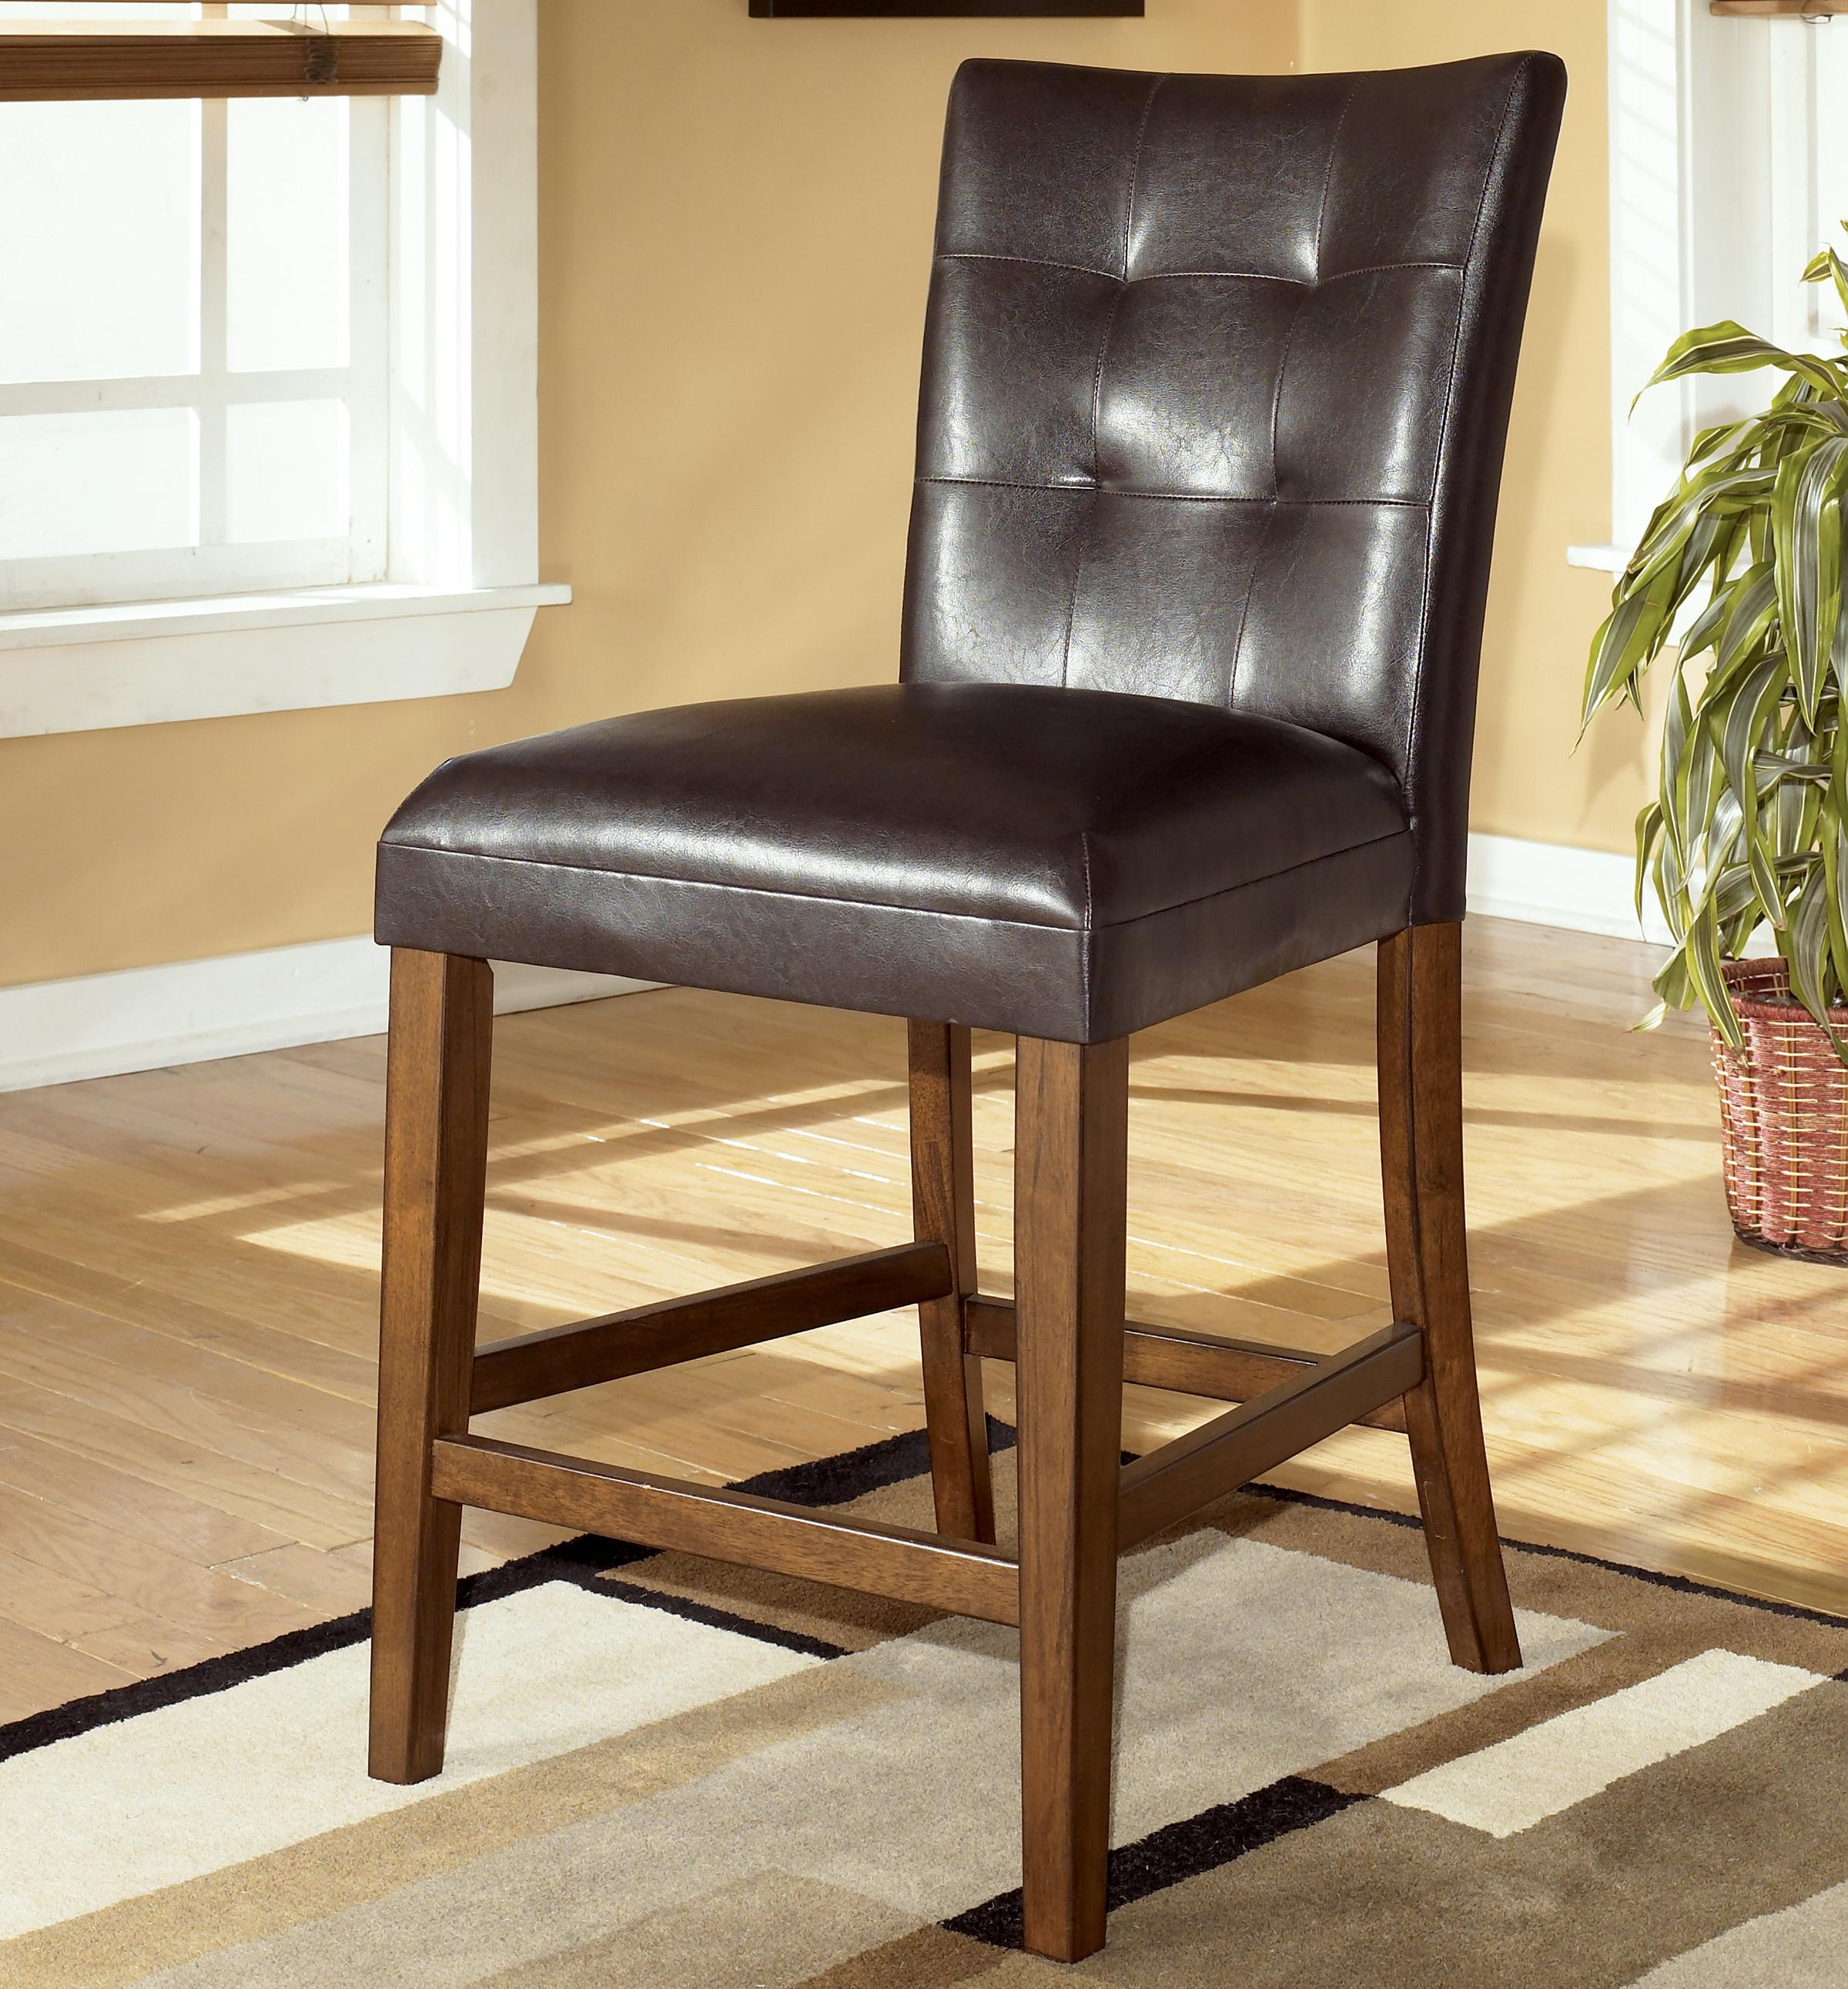 Signature design by ashley lacey d328 124 24 upholstered for Furniture 24